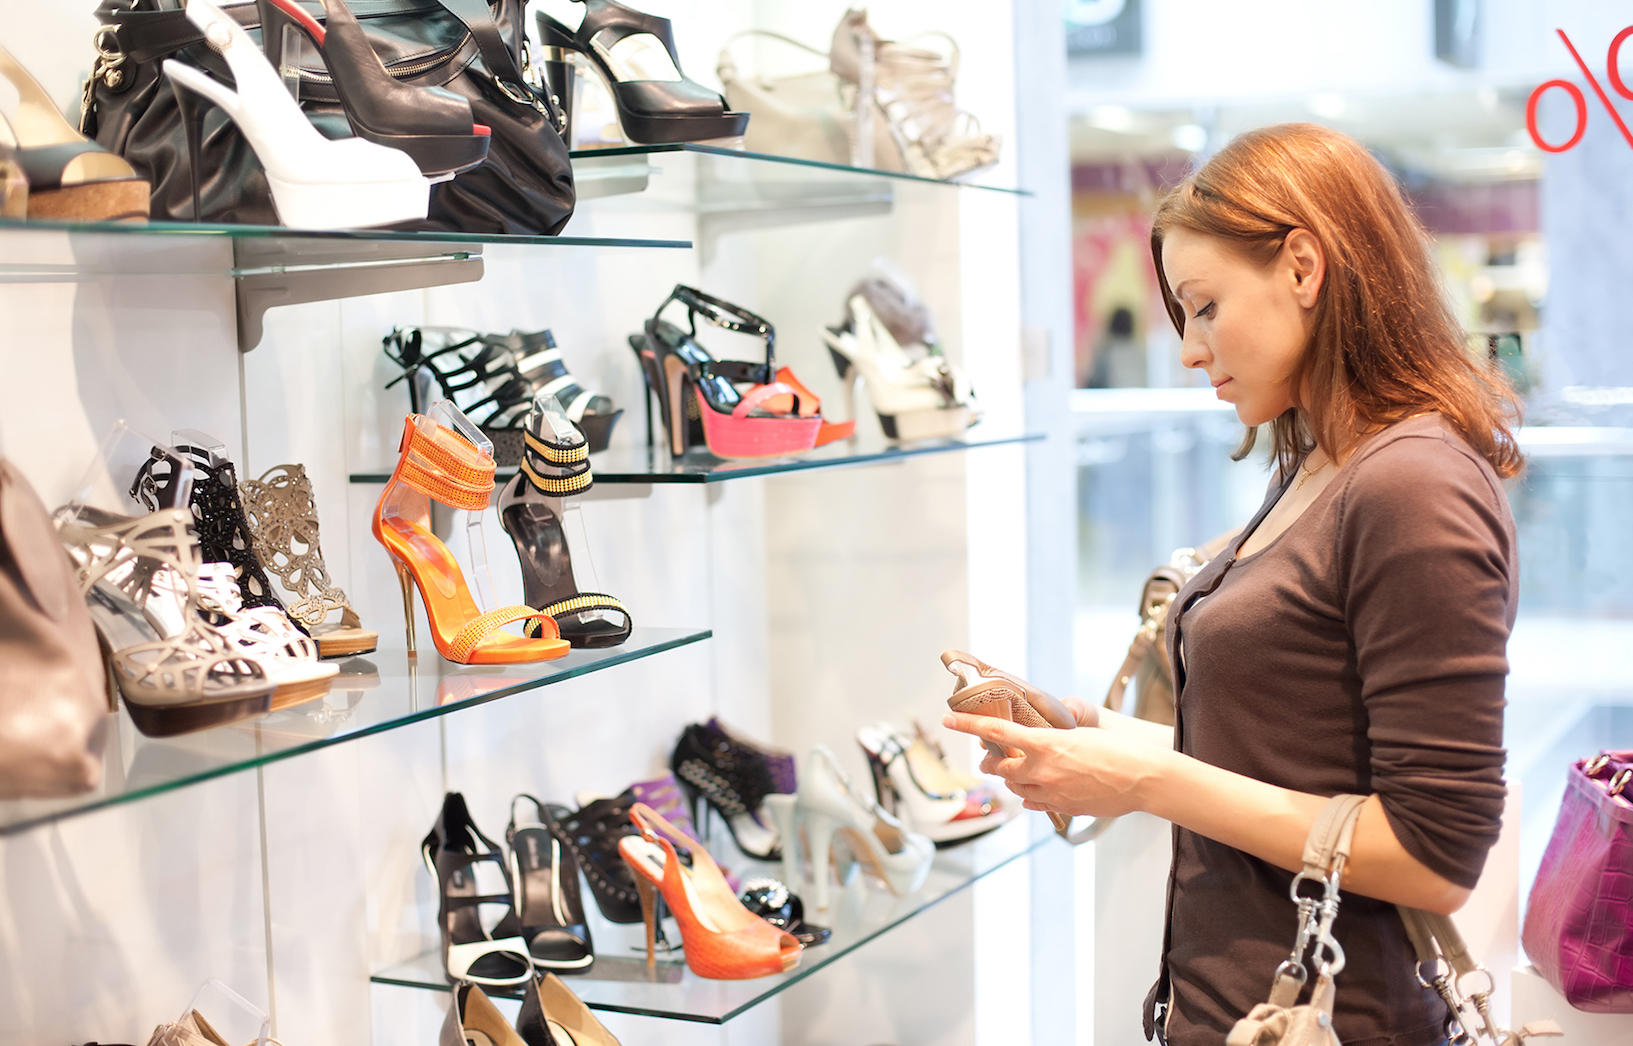 Retailers must provide experiences that help shoppers complete their jobs to be done.